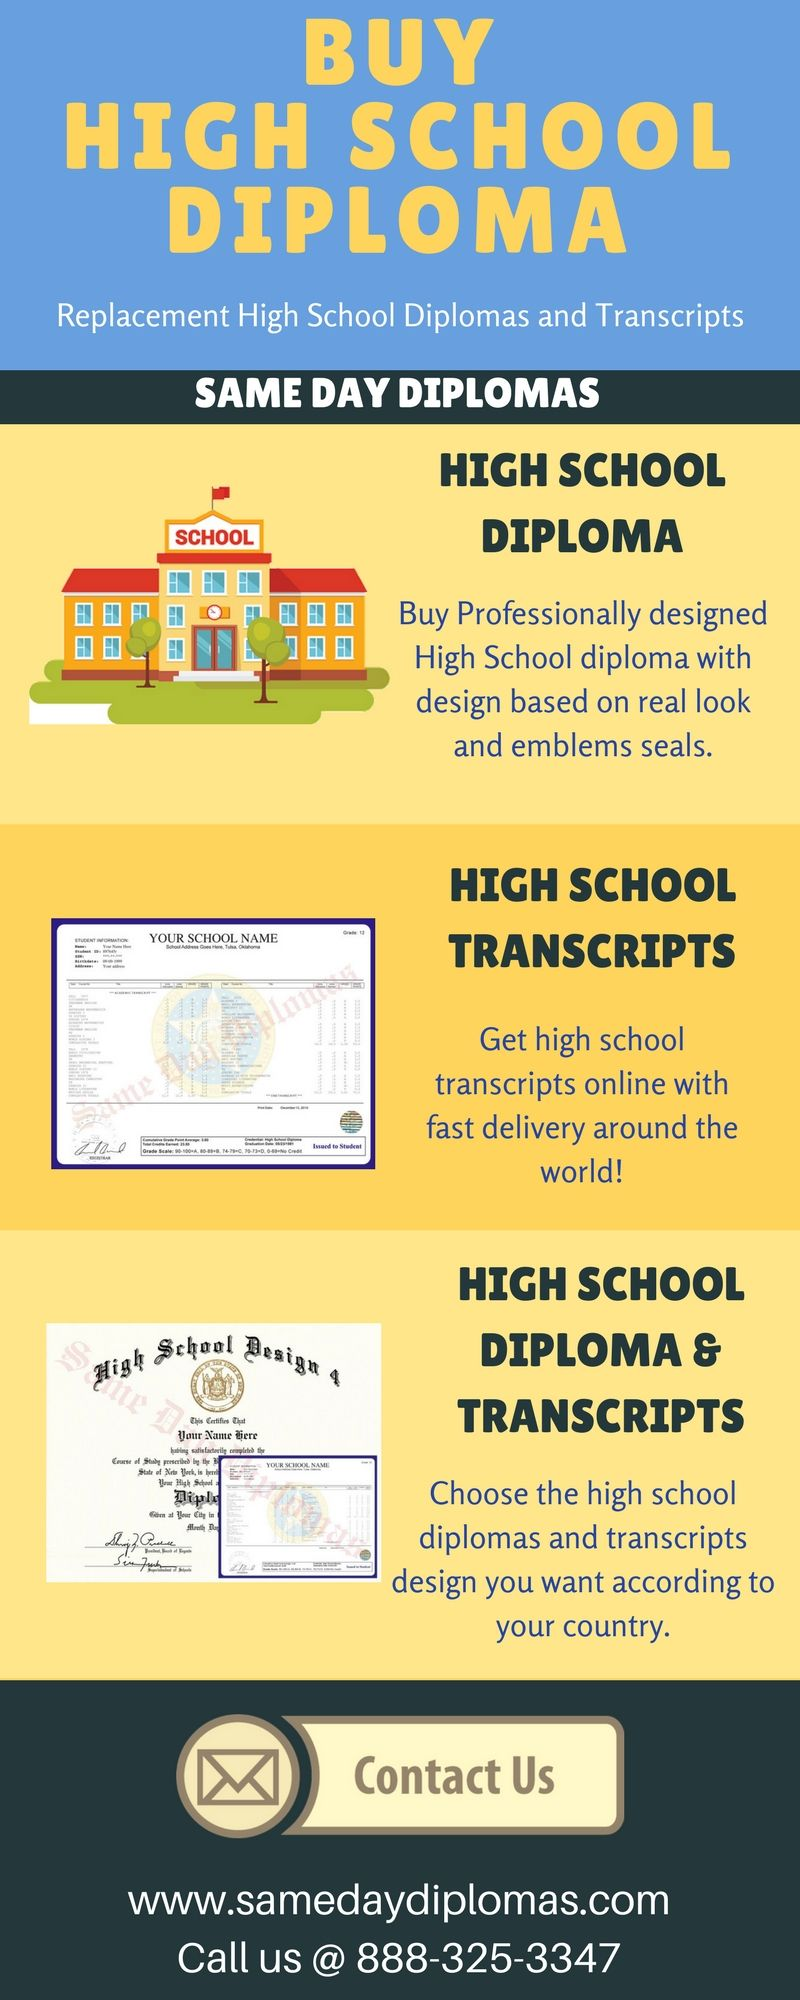 Buy replacement #high #school #diploma and #transcripts online with fast  delivery around